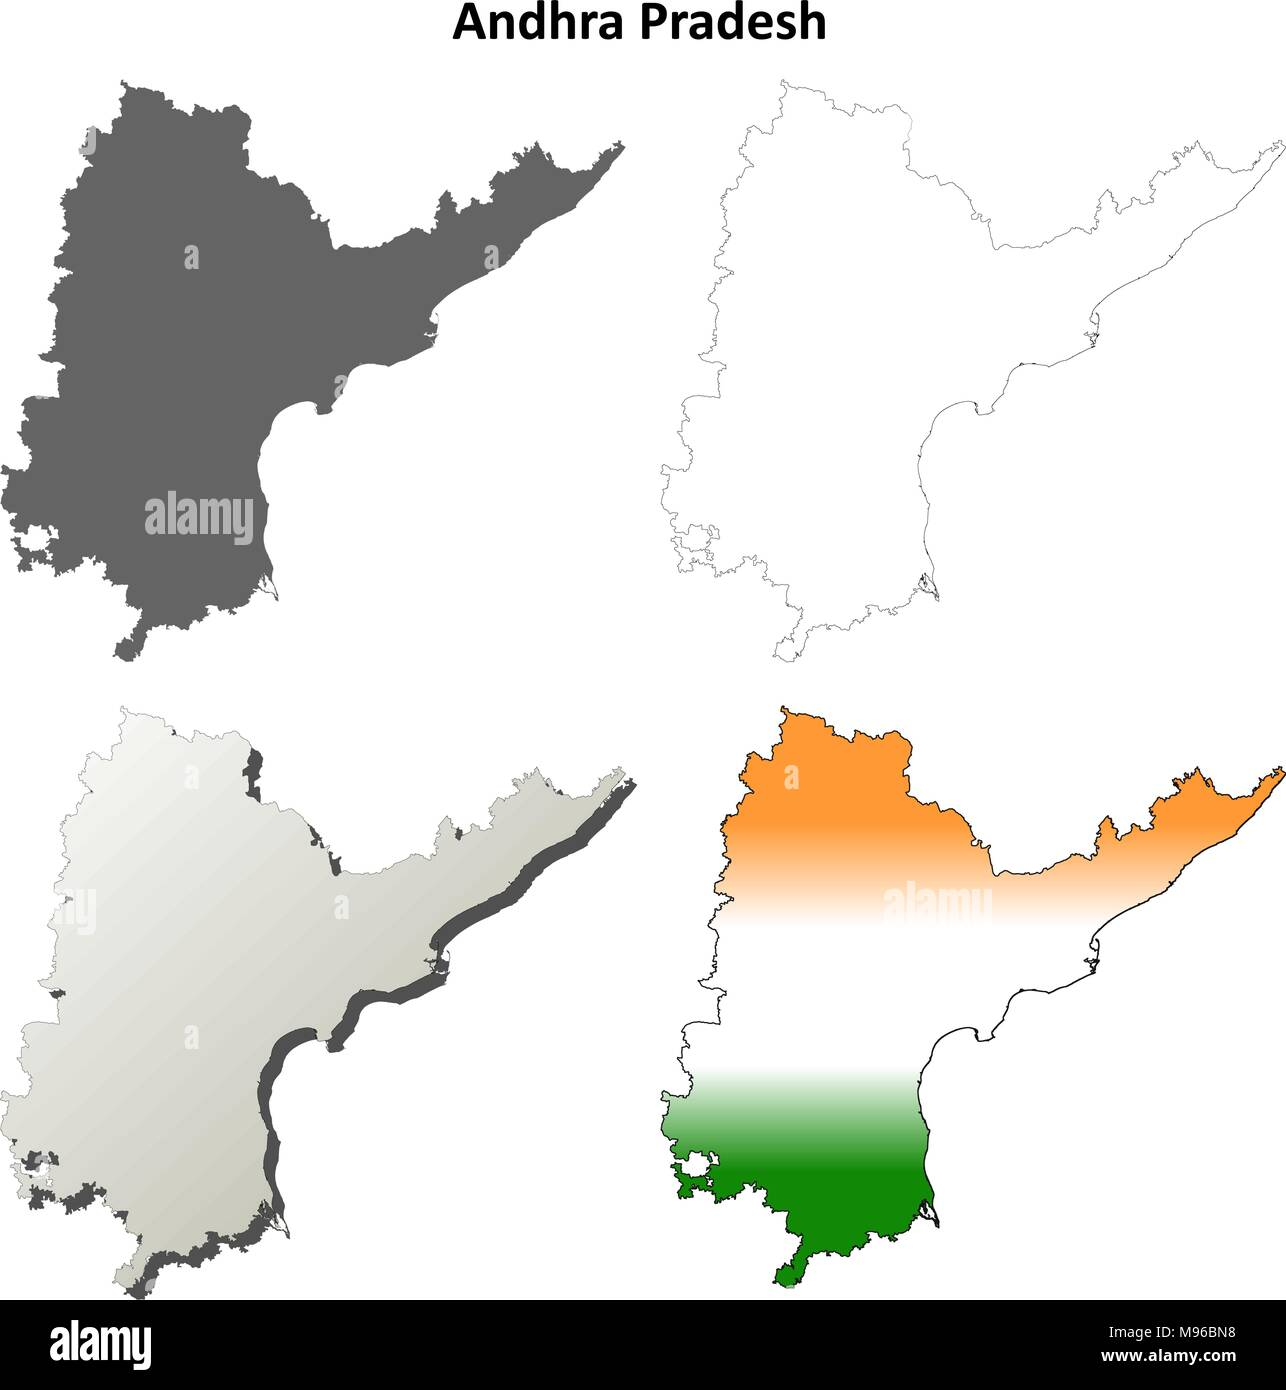 Andhra Pradesh Map Stock Photos & Andhra Pradesh Map Stock Images ...